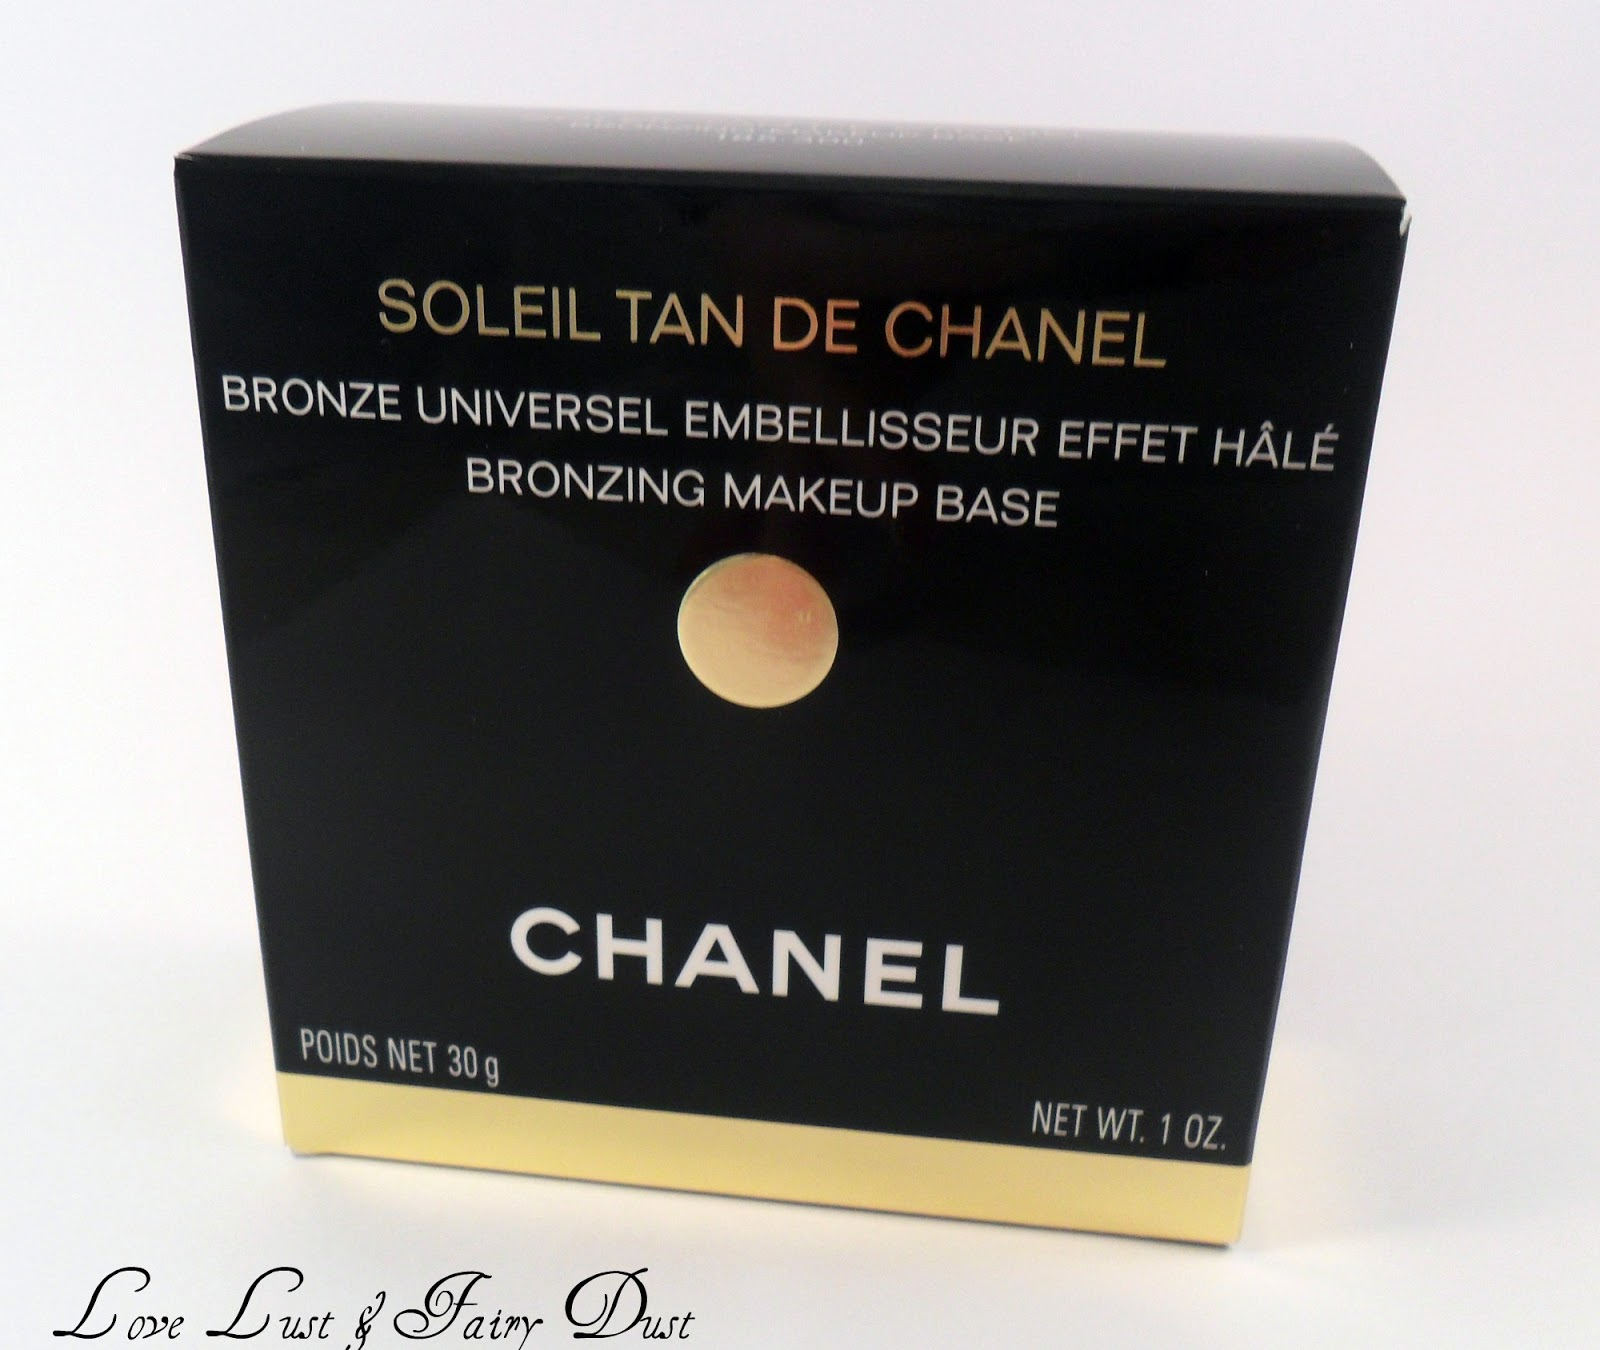 Chanel Bronze Universel Soleil Tan De Chanel